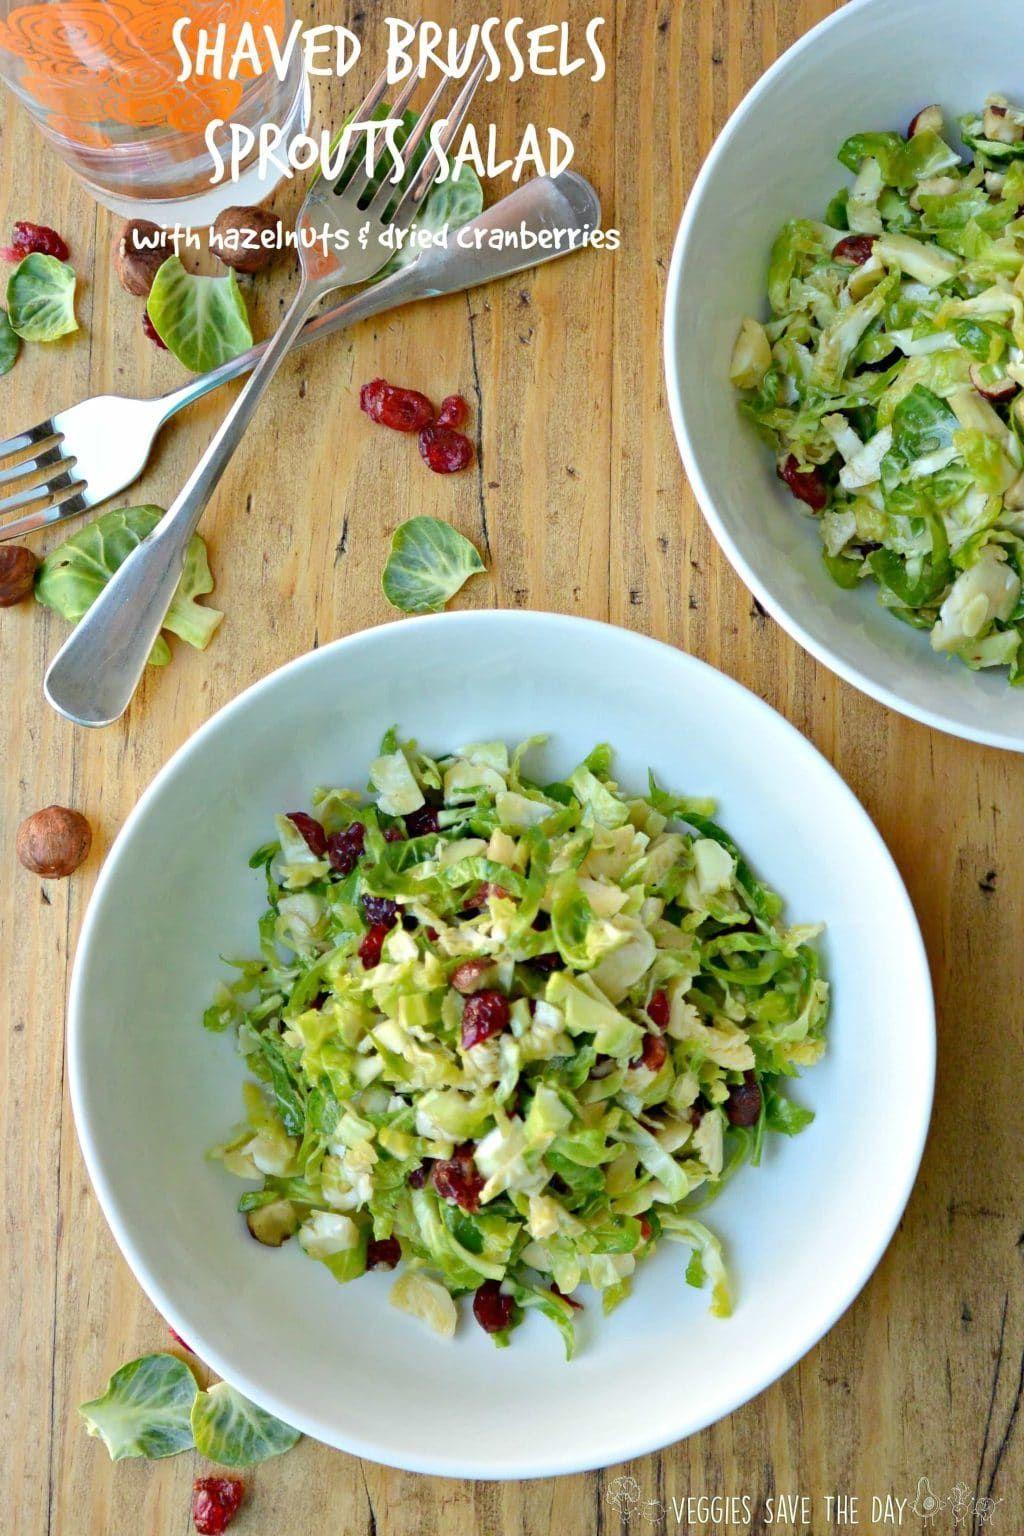 Shaved Brussels Sprouts Salad With Hazelnuts And Dried Cranberries